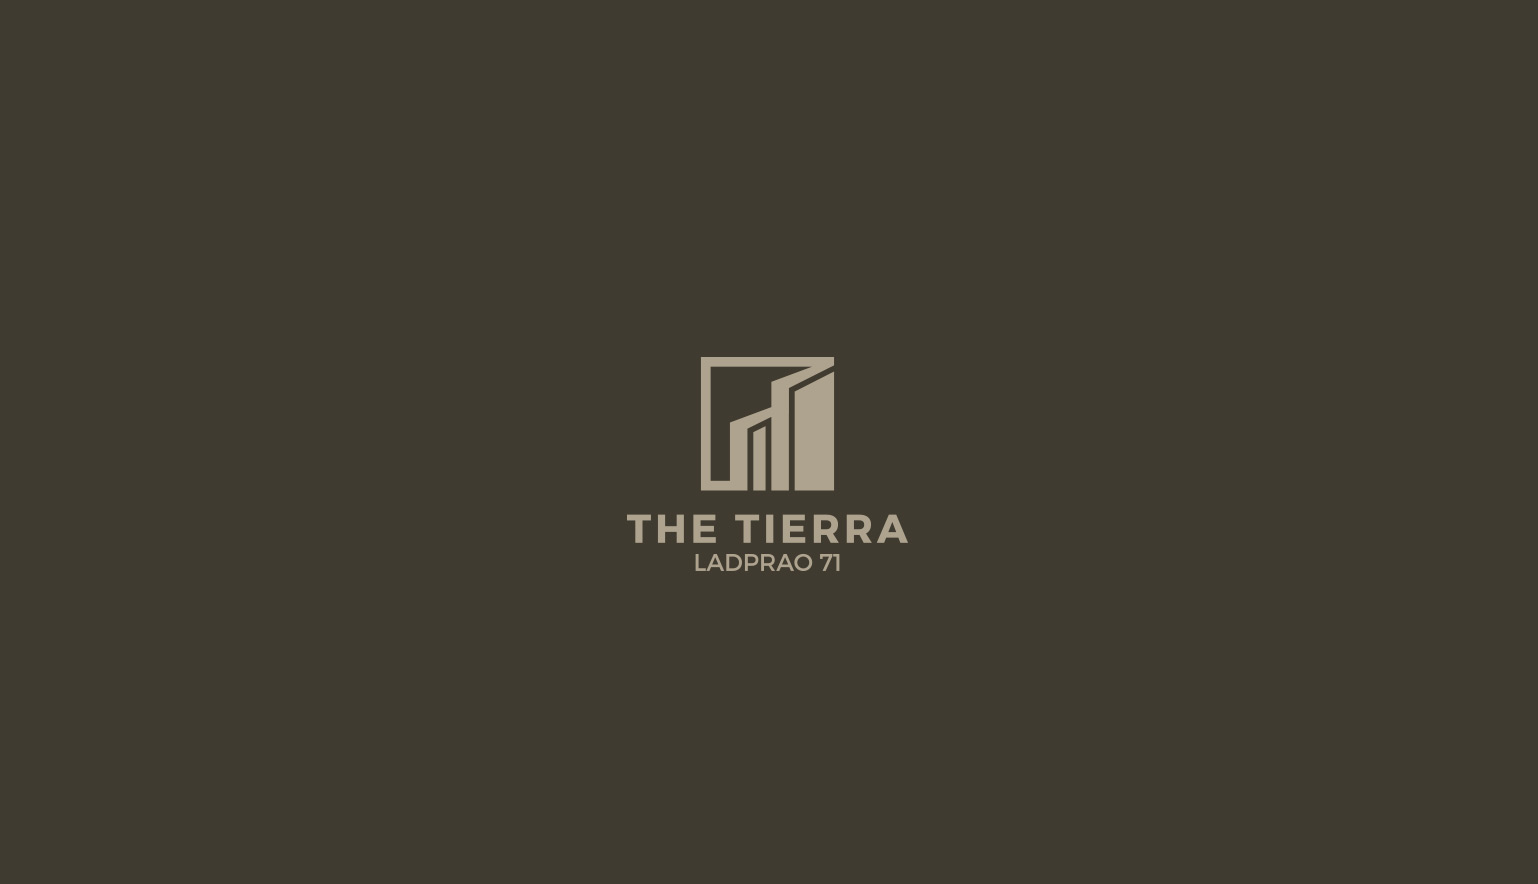 KOS Design - The Tierra